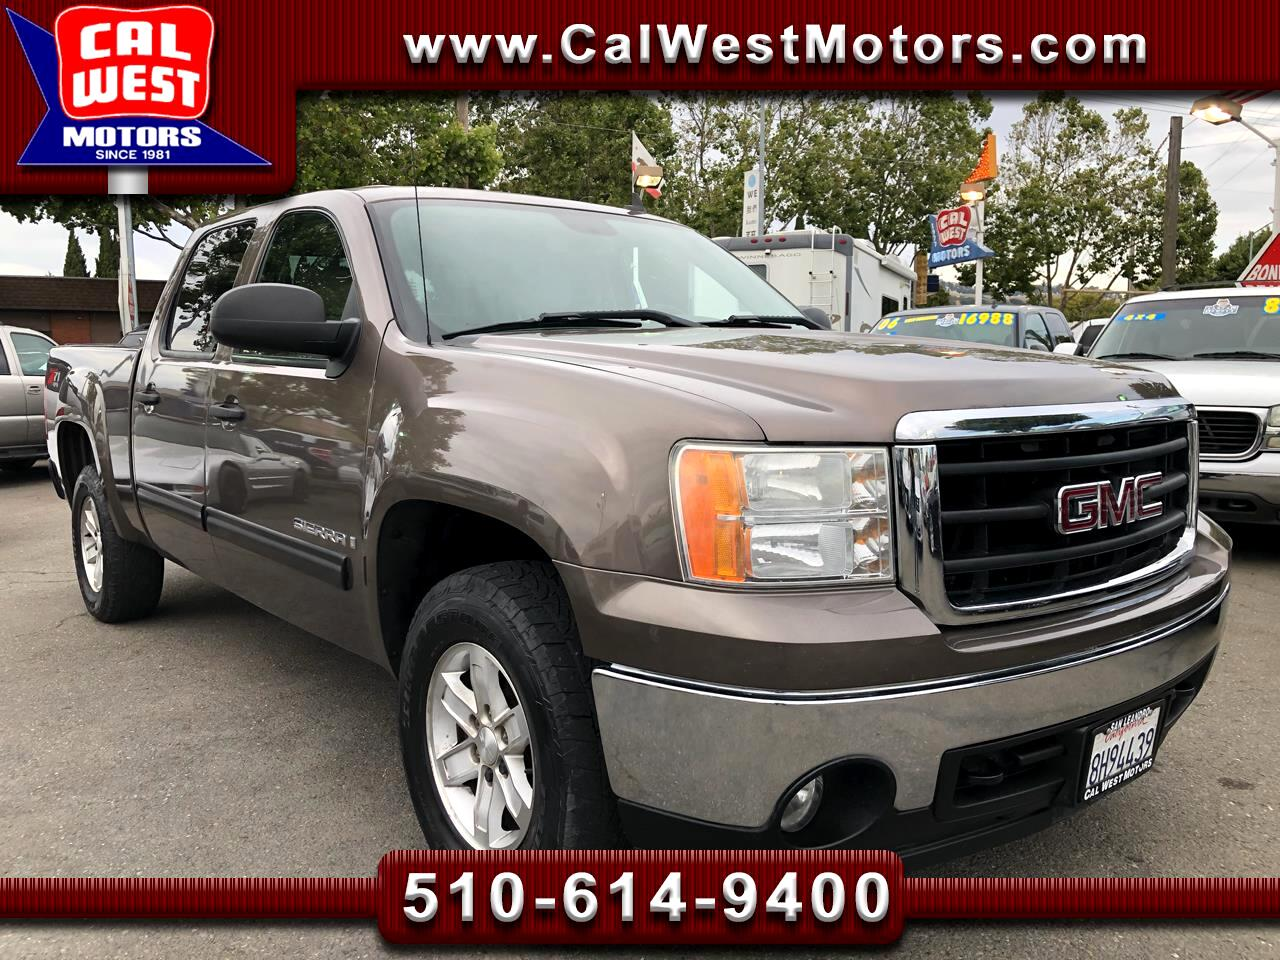 2007 GMC Sierra 1500 Crew Cab 4X4 Z-71 Crew Cab 4D 1Owner VeryClean GreatMtnce